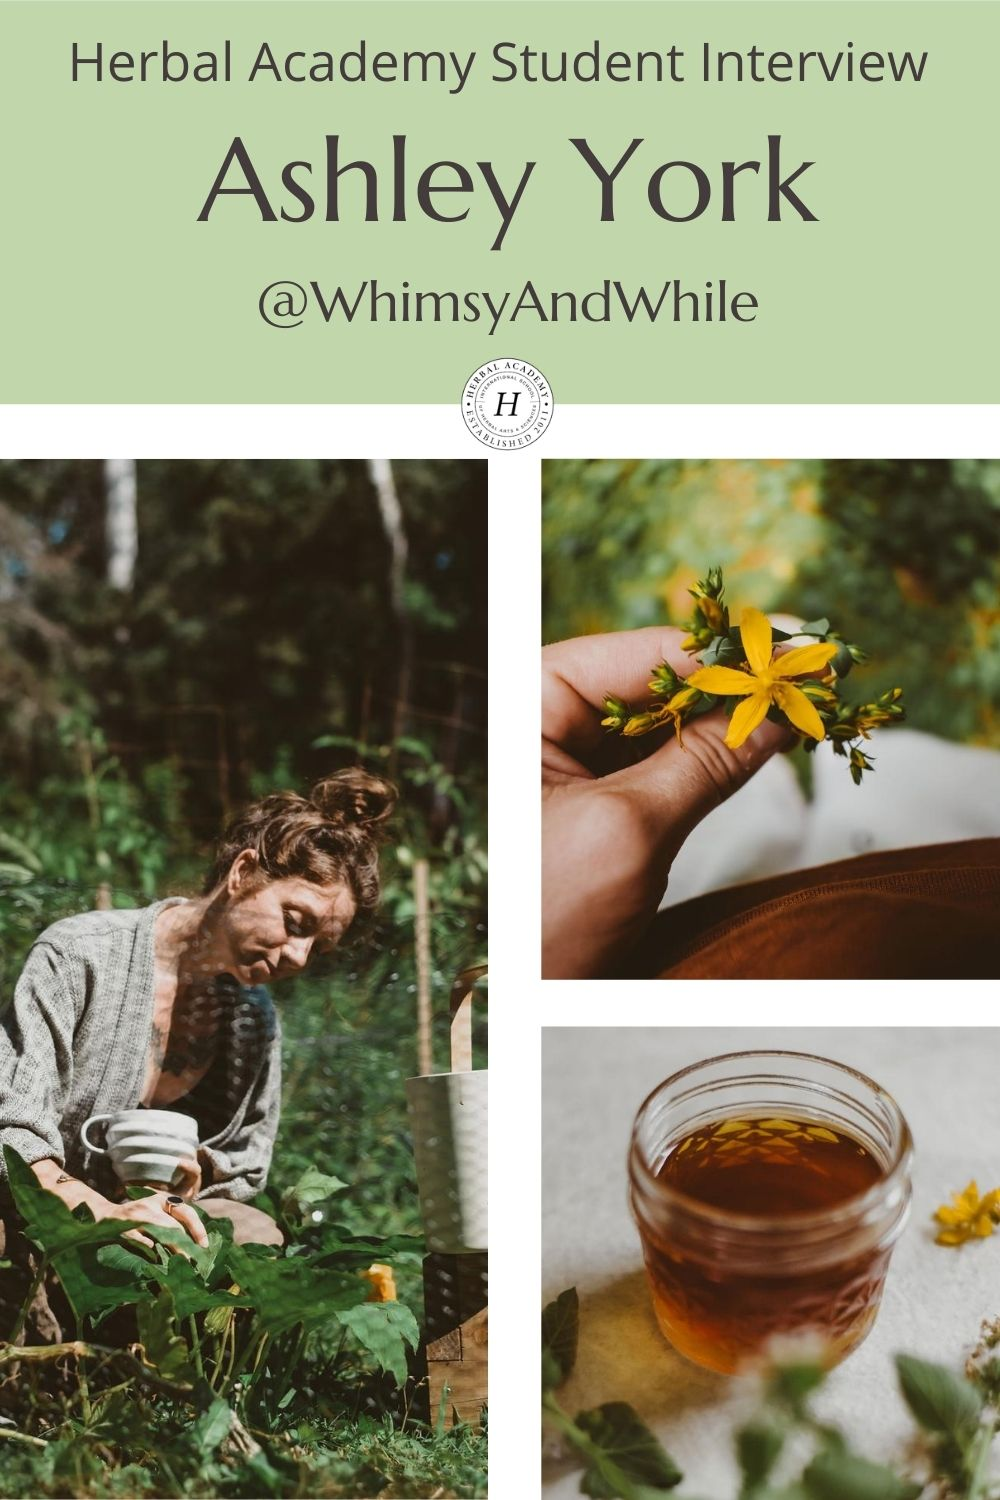 HA Student Feature: Ashley York (@whimsyandwhile) | Herbal Academy | In the second installment of our Student Feature Series, we chatted with Ashley York (@whimsyandwhile) about her herbalism journey.